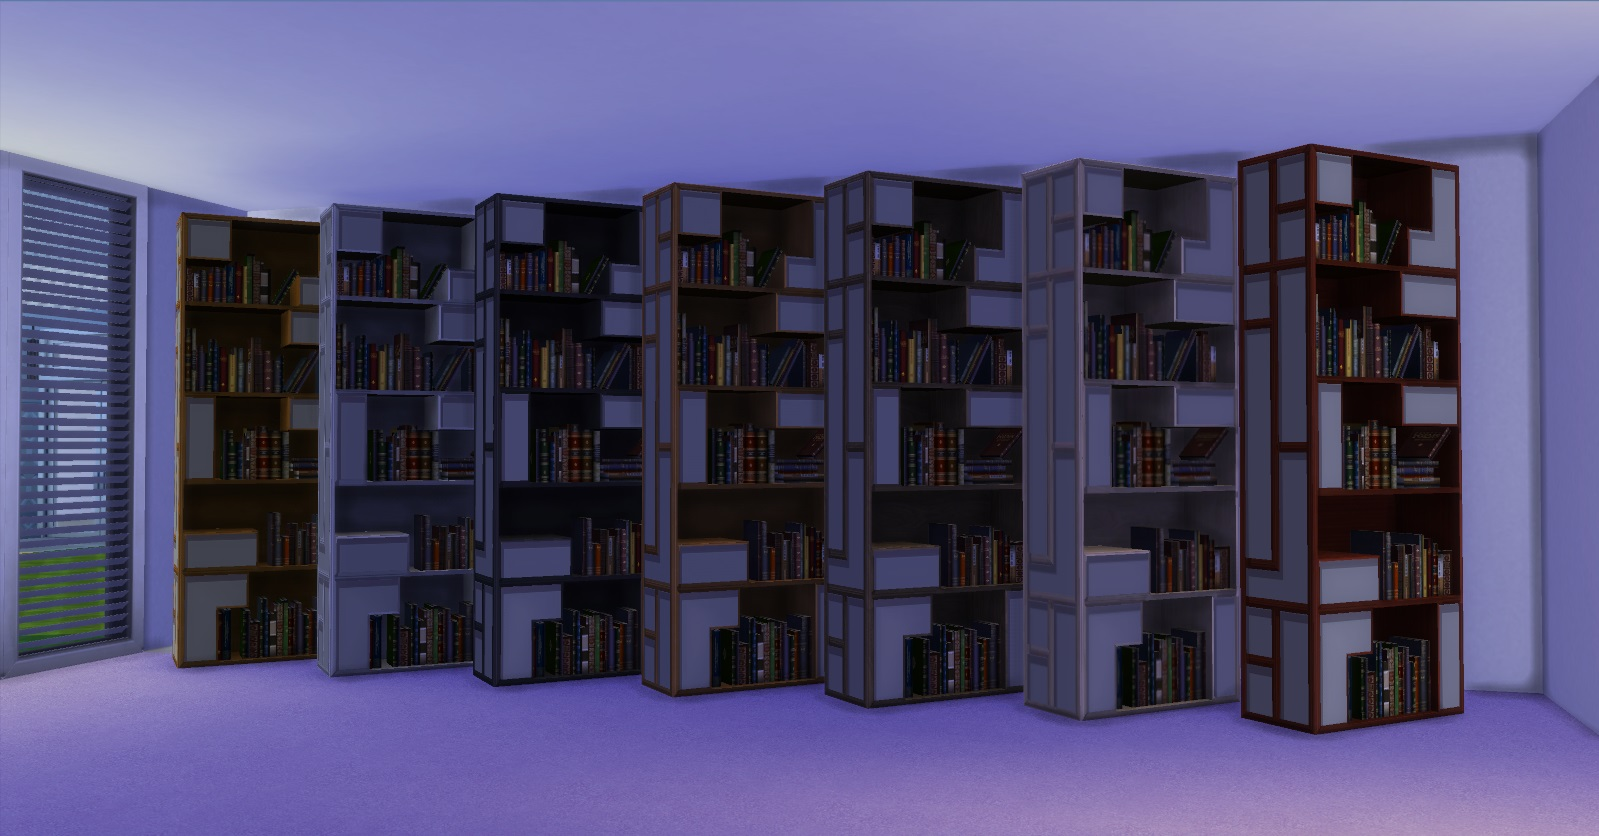 Very Impressive portraiture of Mod The Sims Poetic Bookshelf with #4A4685 color and 1599x836 pixels